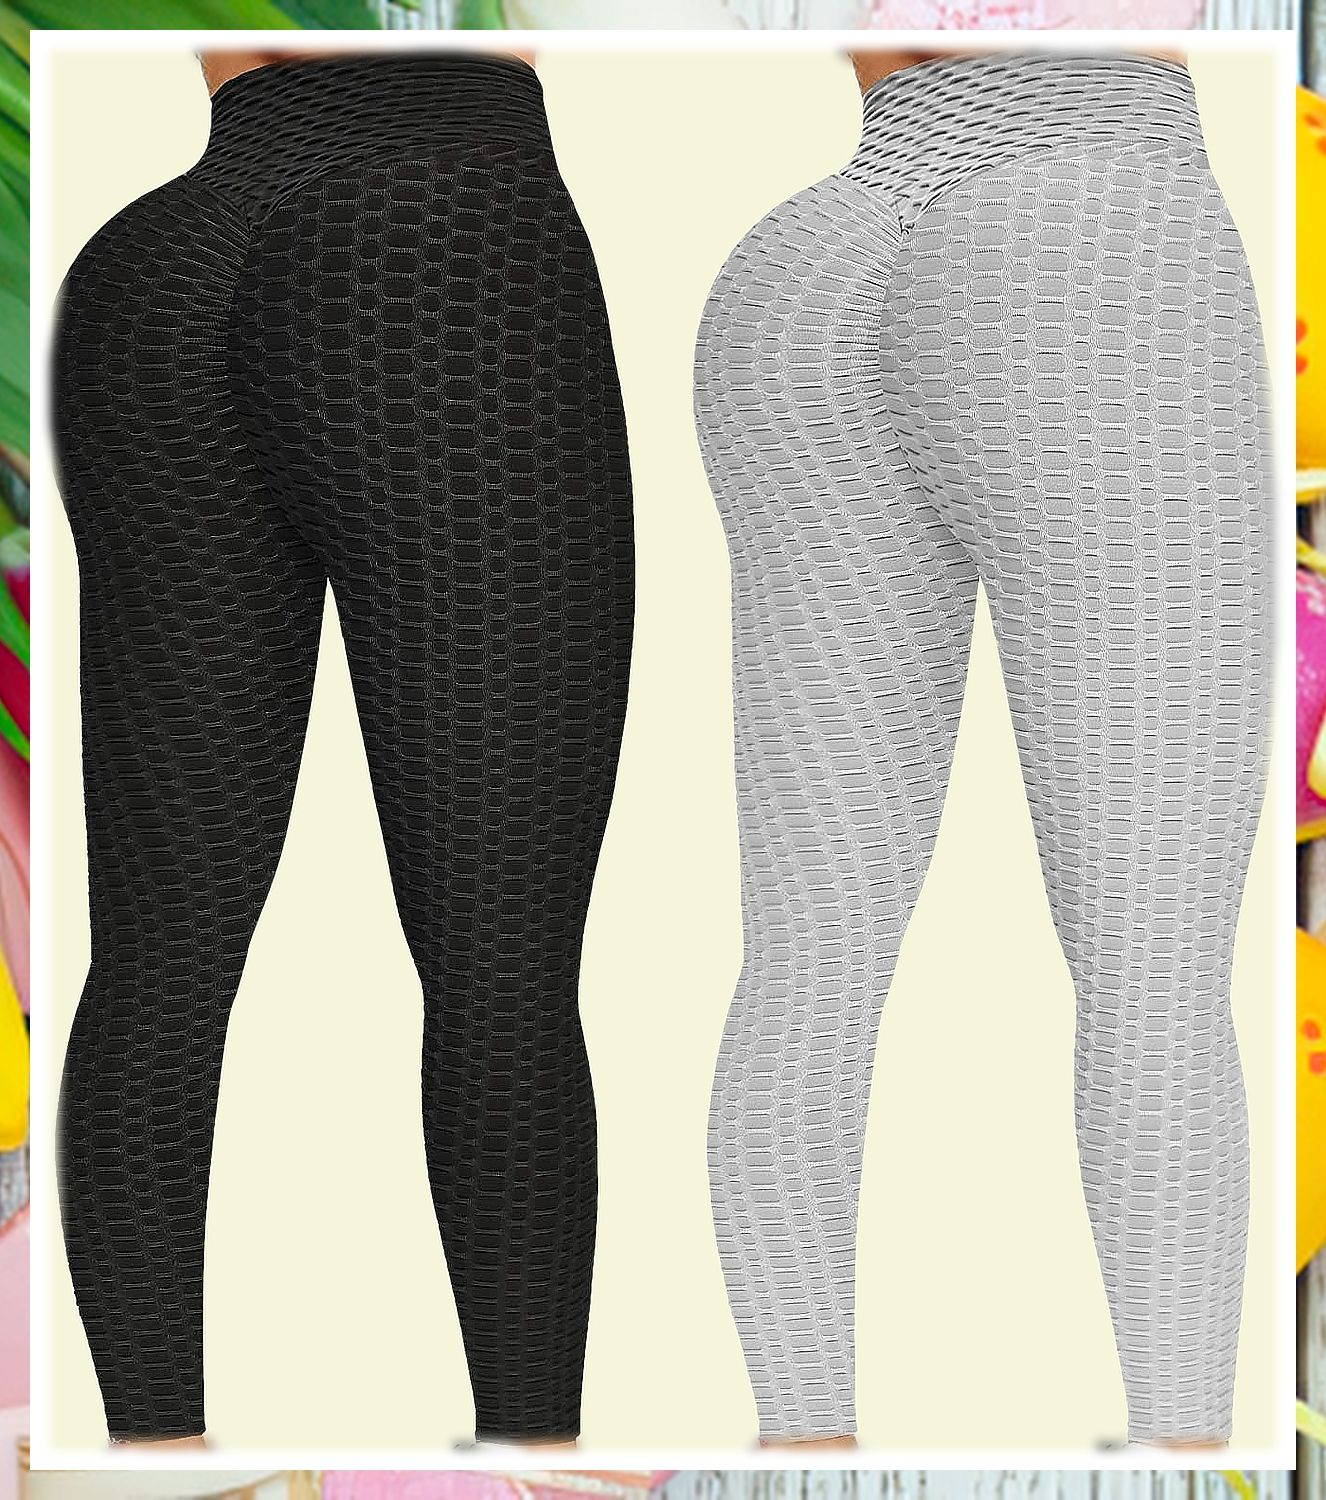 (This is an affiliate pin) Non-Cellulite, Non See Through & Sexy Butt Lifting Our Workout leggings with fantastic 3D texture design